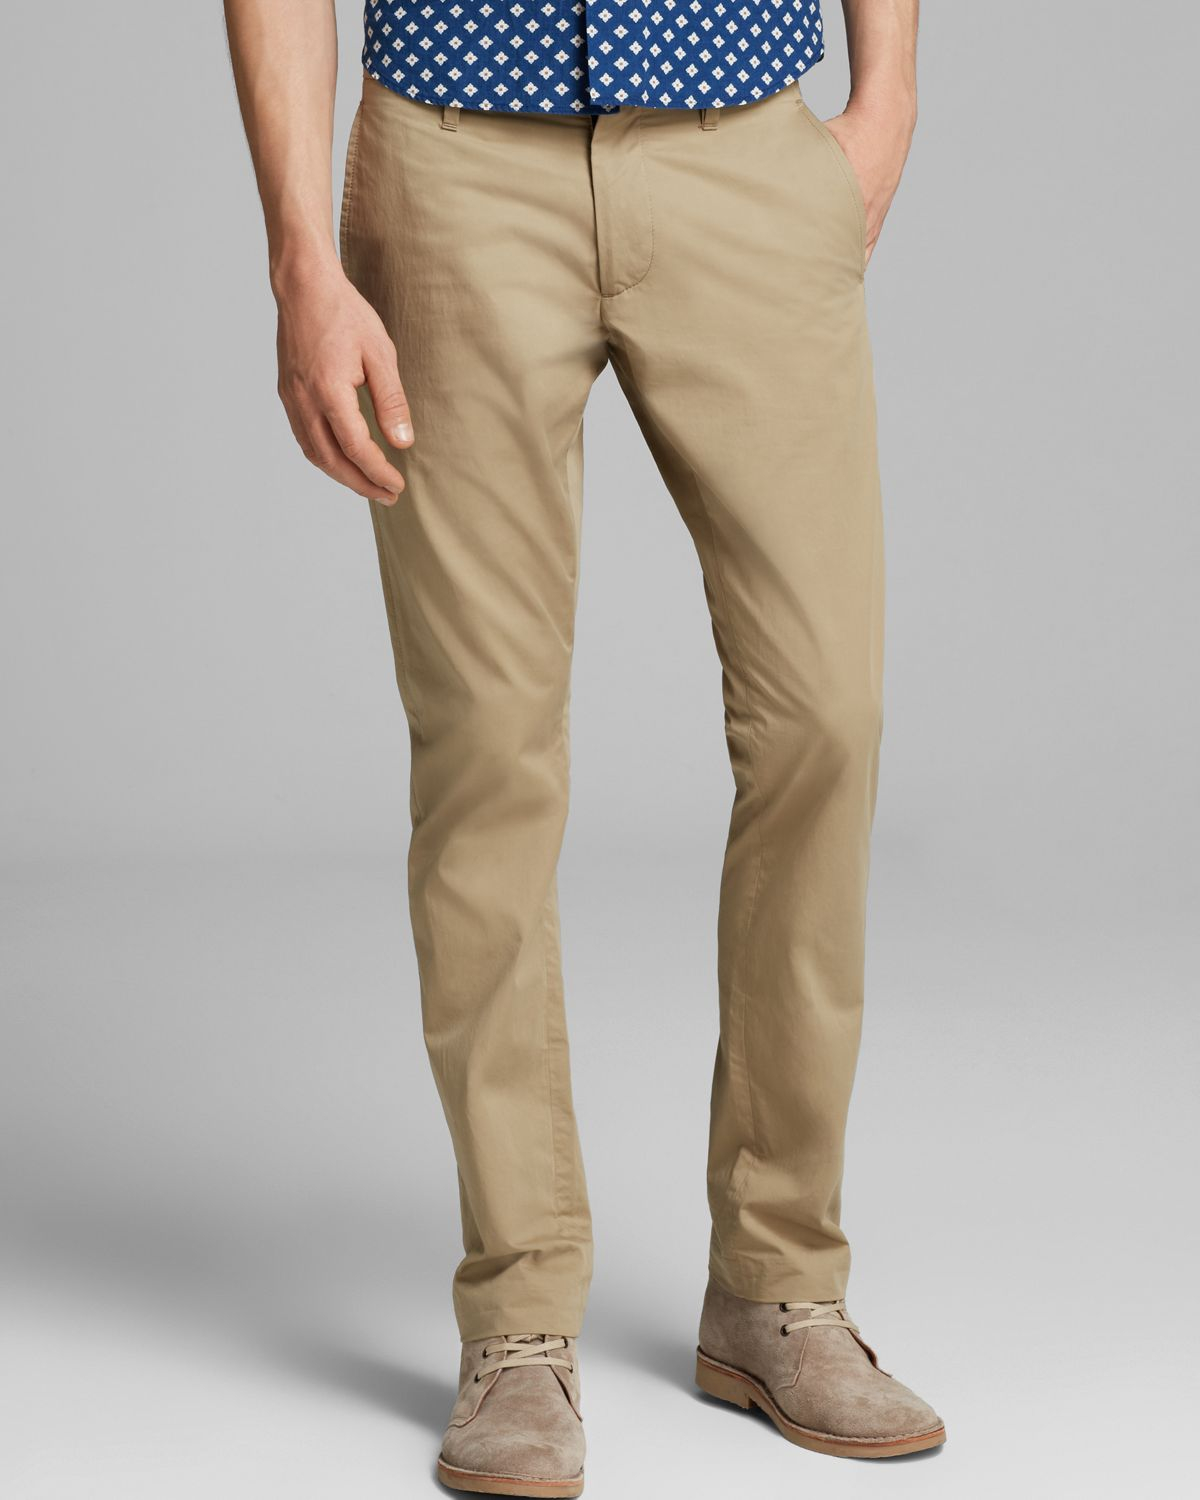 Shop Lands' End for Men's Slim Fit Pants. Browse the latest styles of men's slim fit chinos, dress pants, trousers and more here.